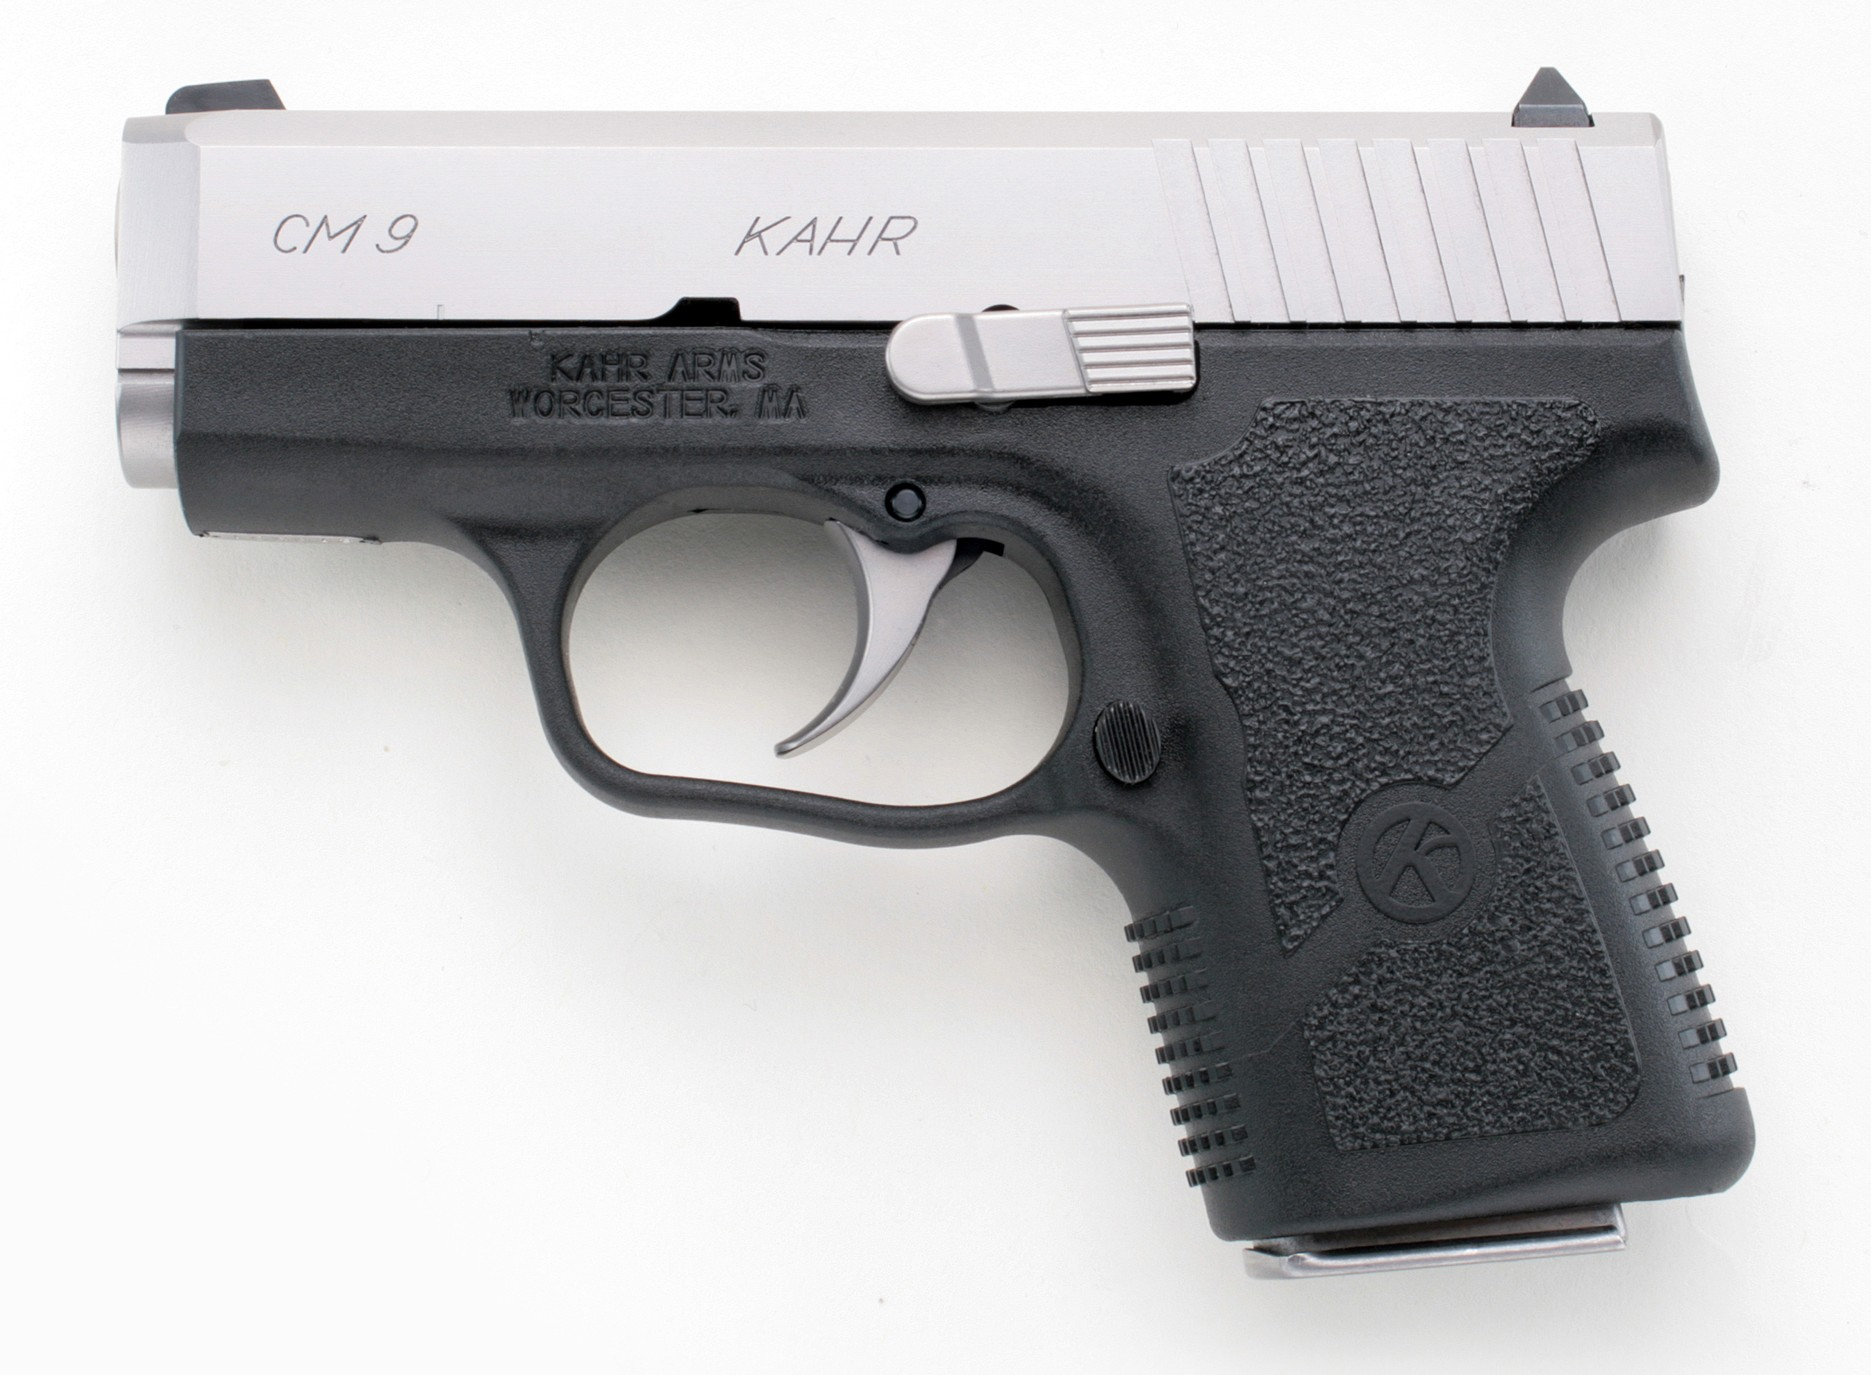 Black Kahr CM9 with silver rail, barrel pointed to the left on a white background